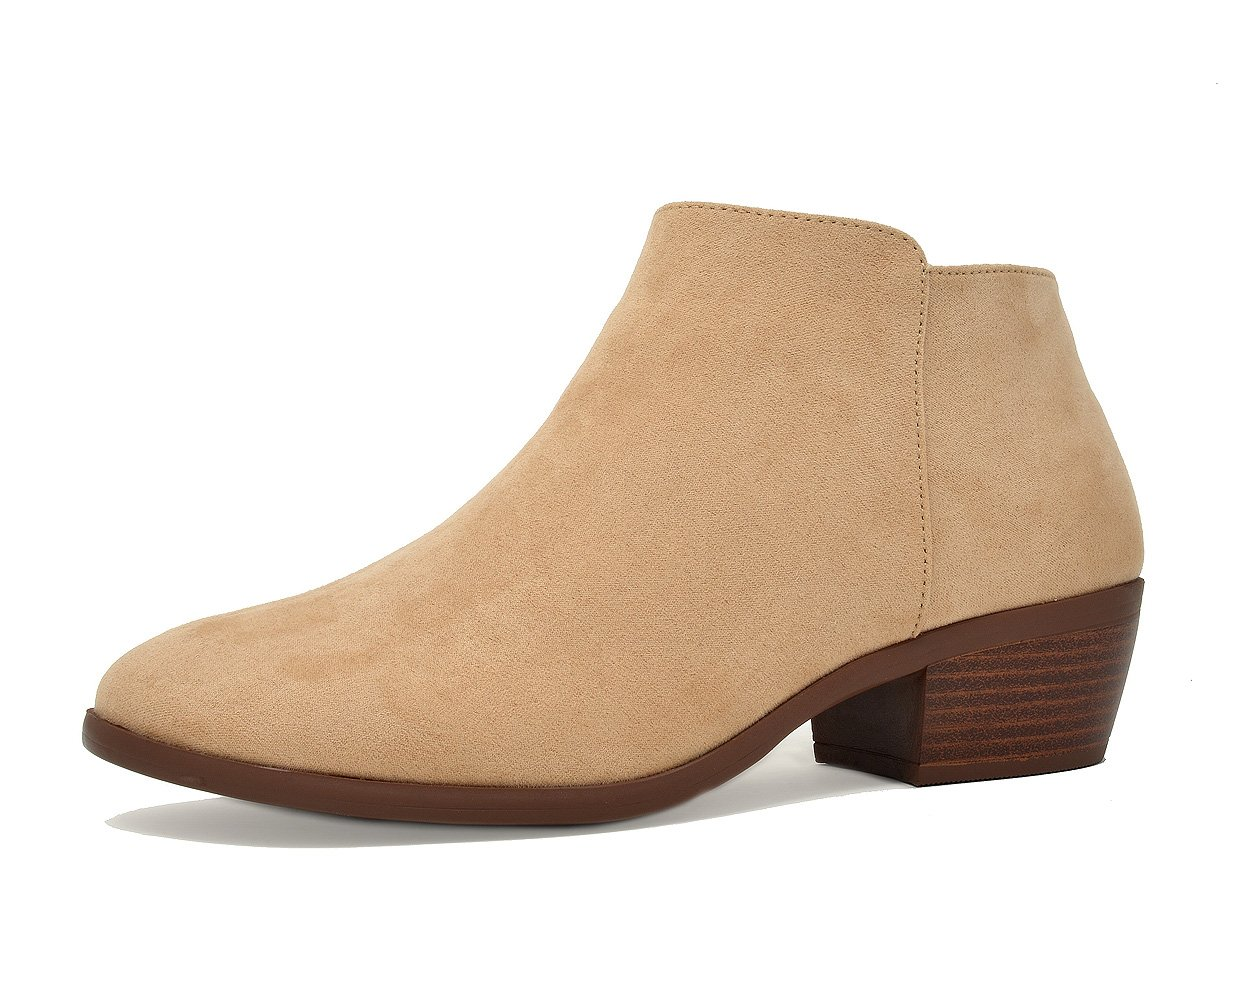 TOETOS Women's Boston-01 Natural Suede Block Heel Side Zipper Ankle Booties Size 8 M US